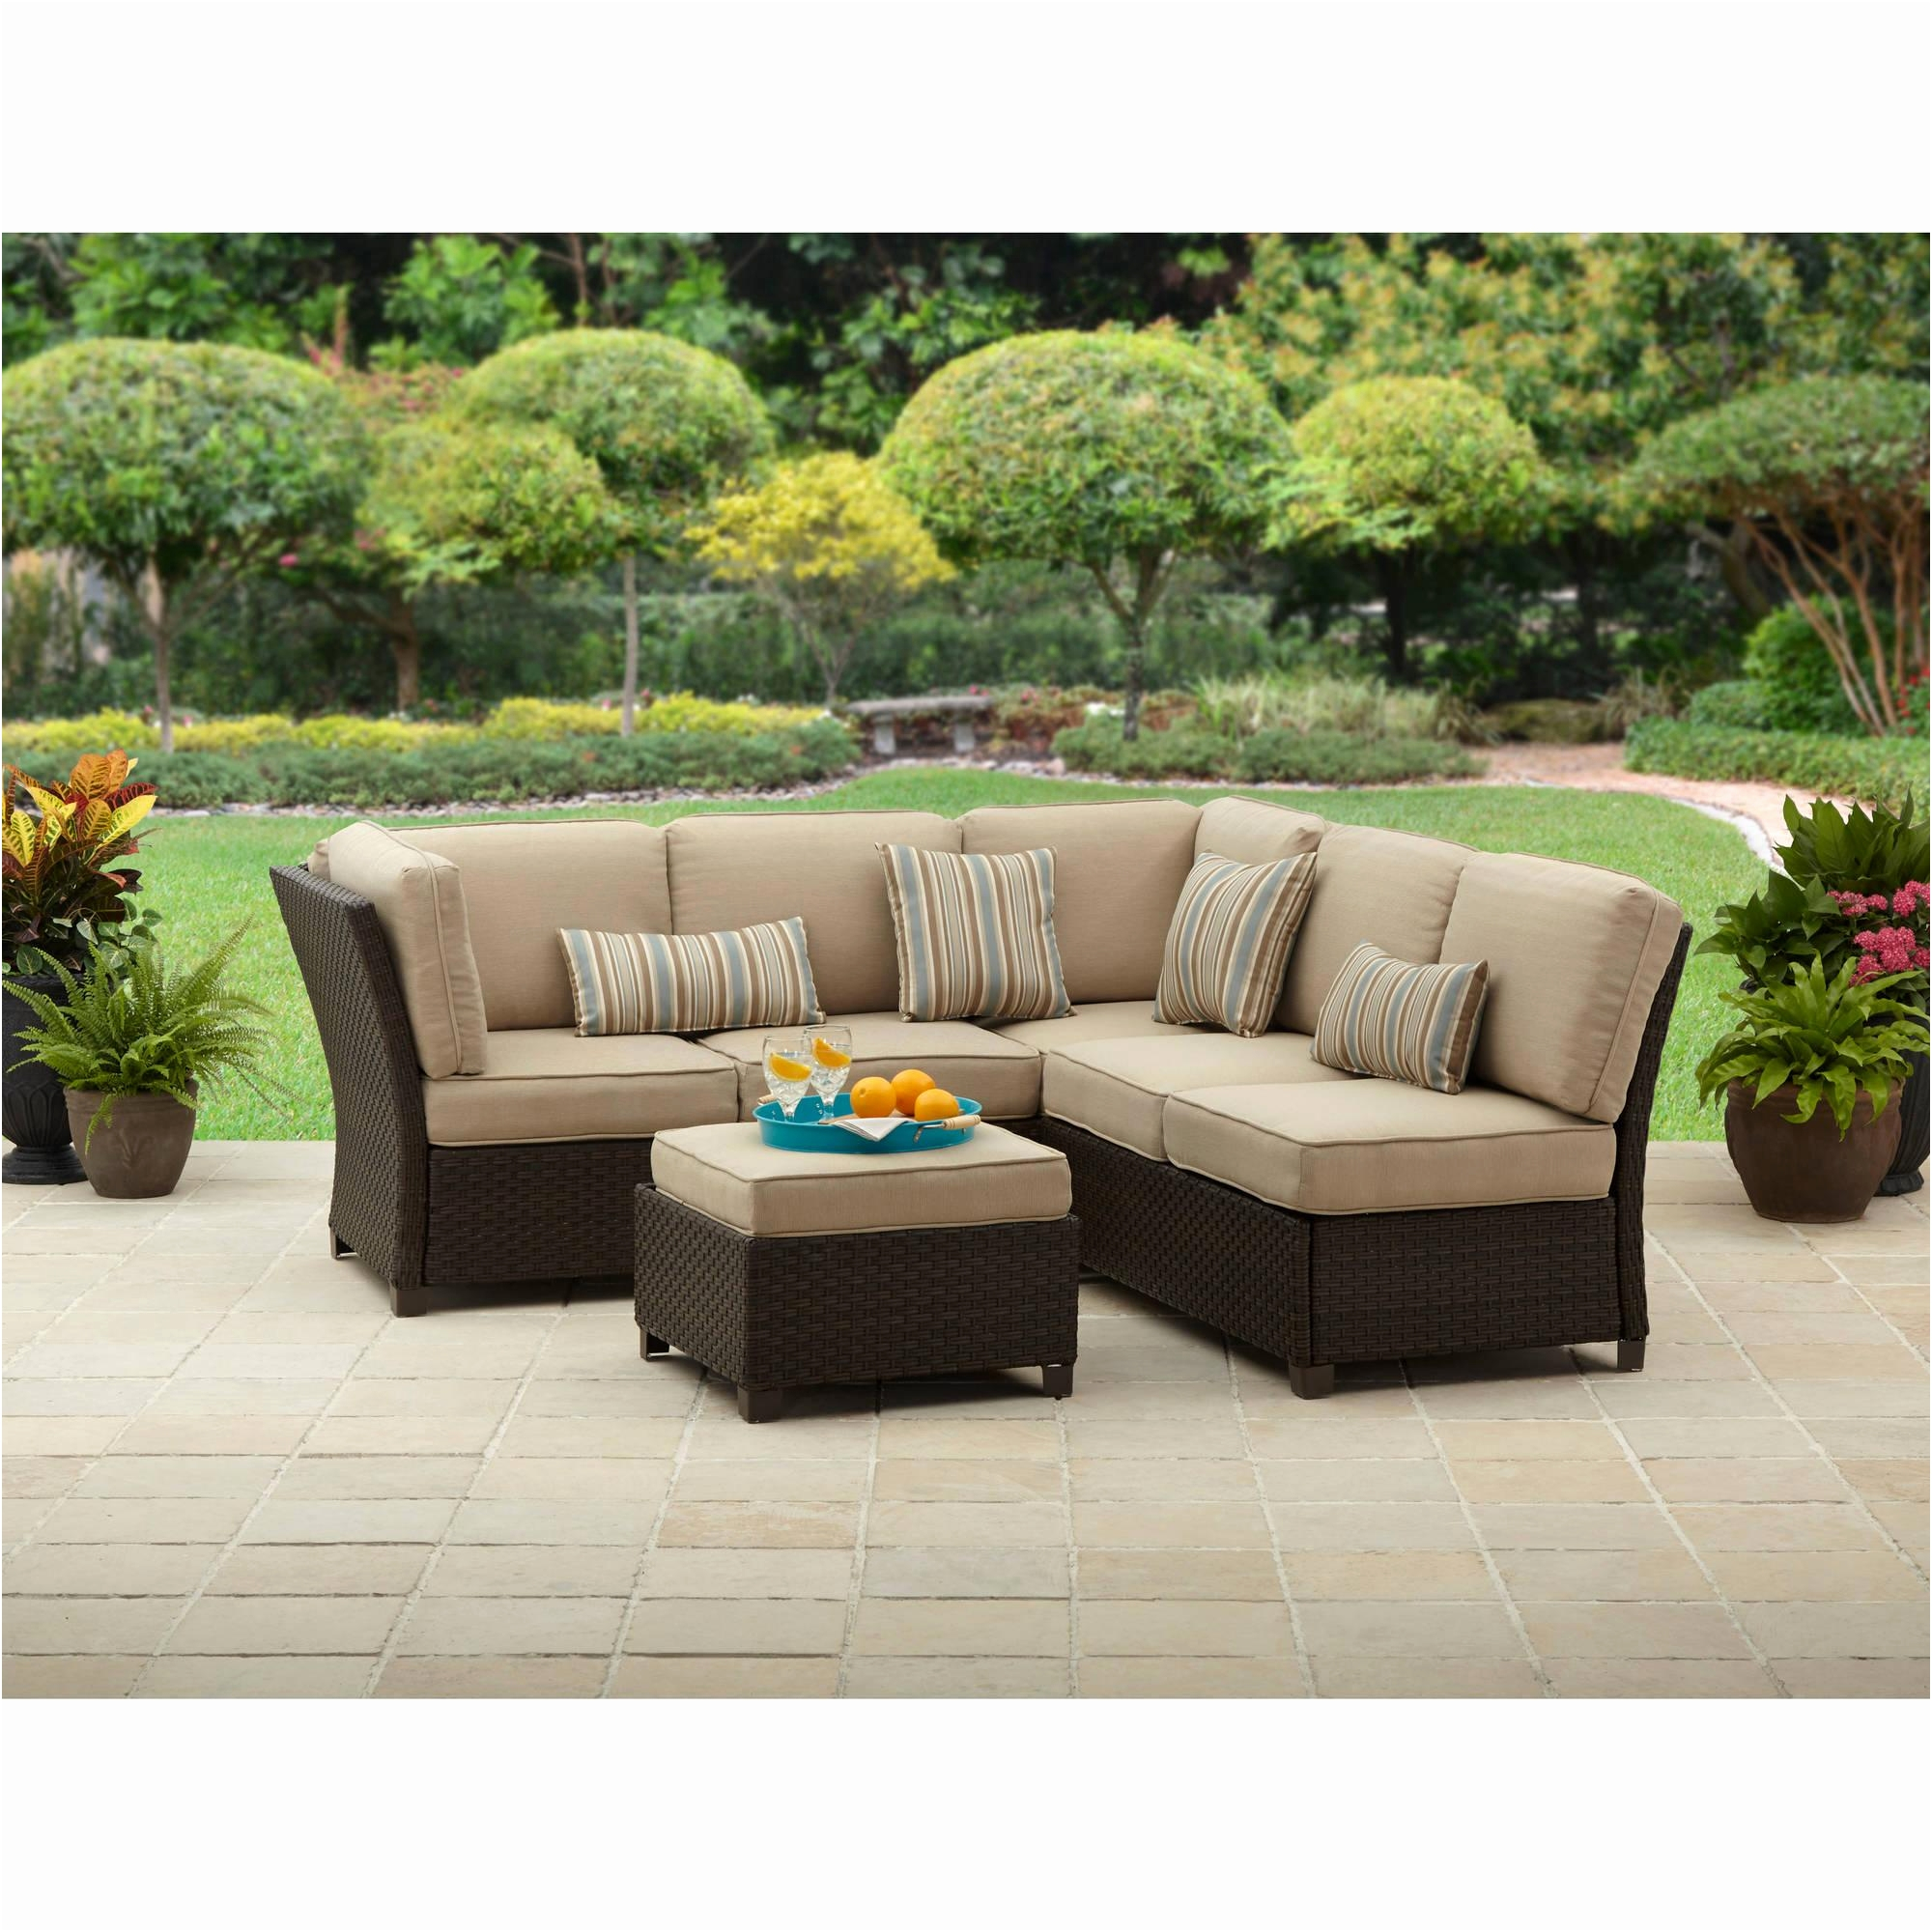 Contemporary Lazy Boy Patio Furniture Covers Modern pertaining to sizing 2000 X 2000